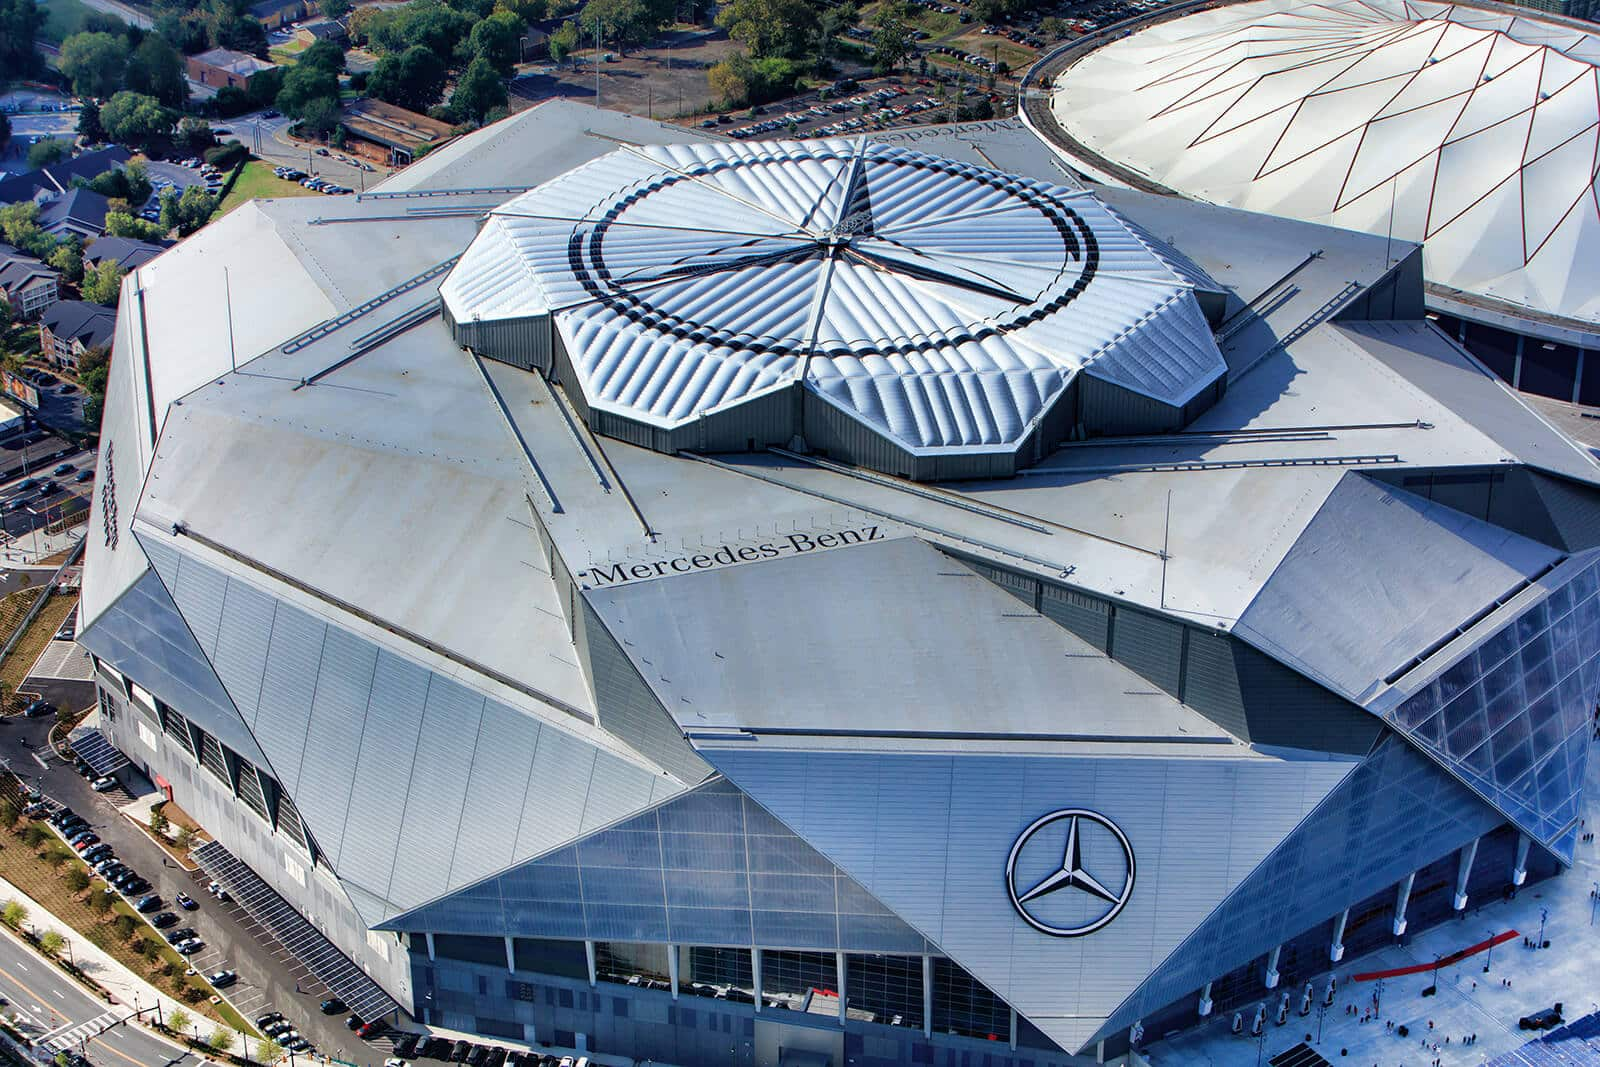 Mercedes benz stadium roof logos for Will call mercedes benz stadium